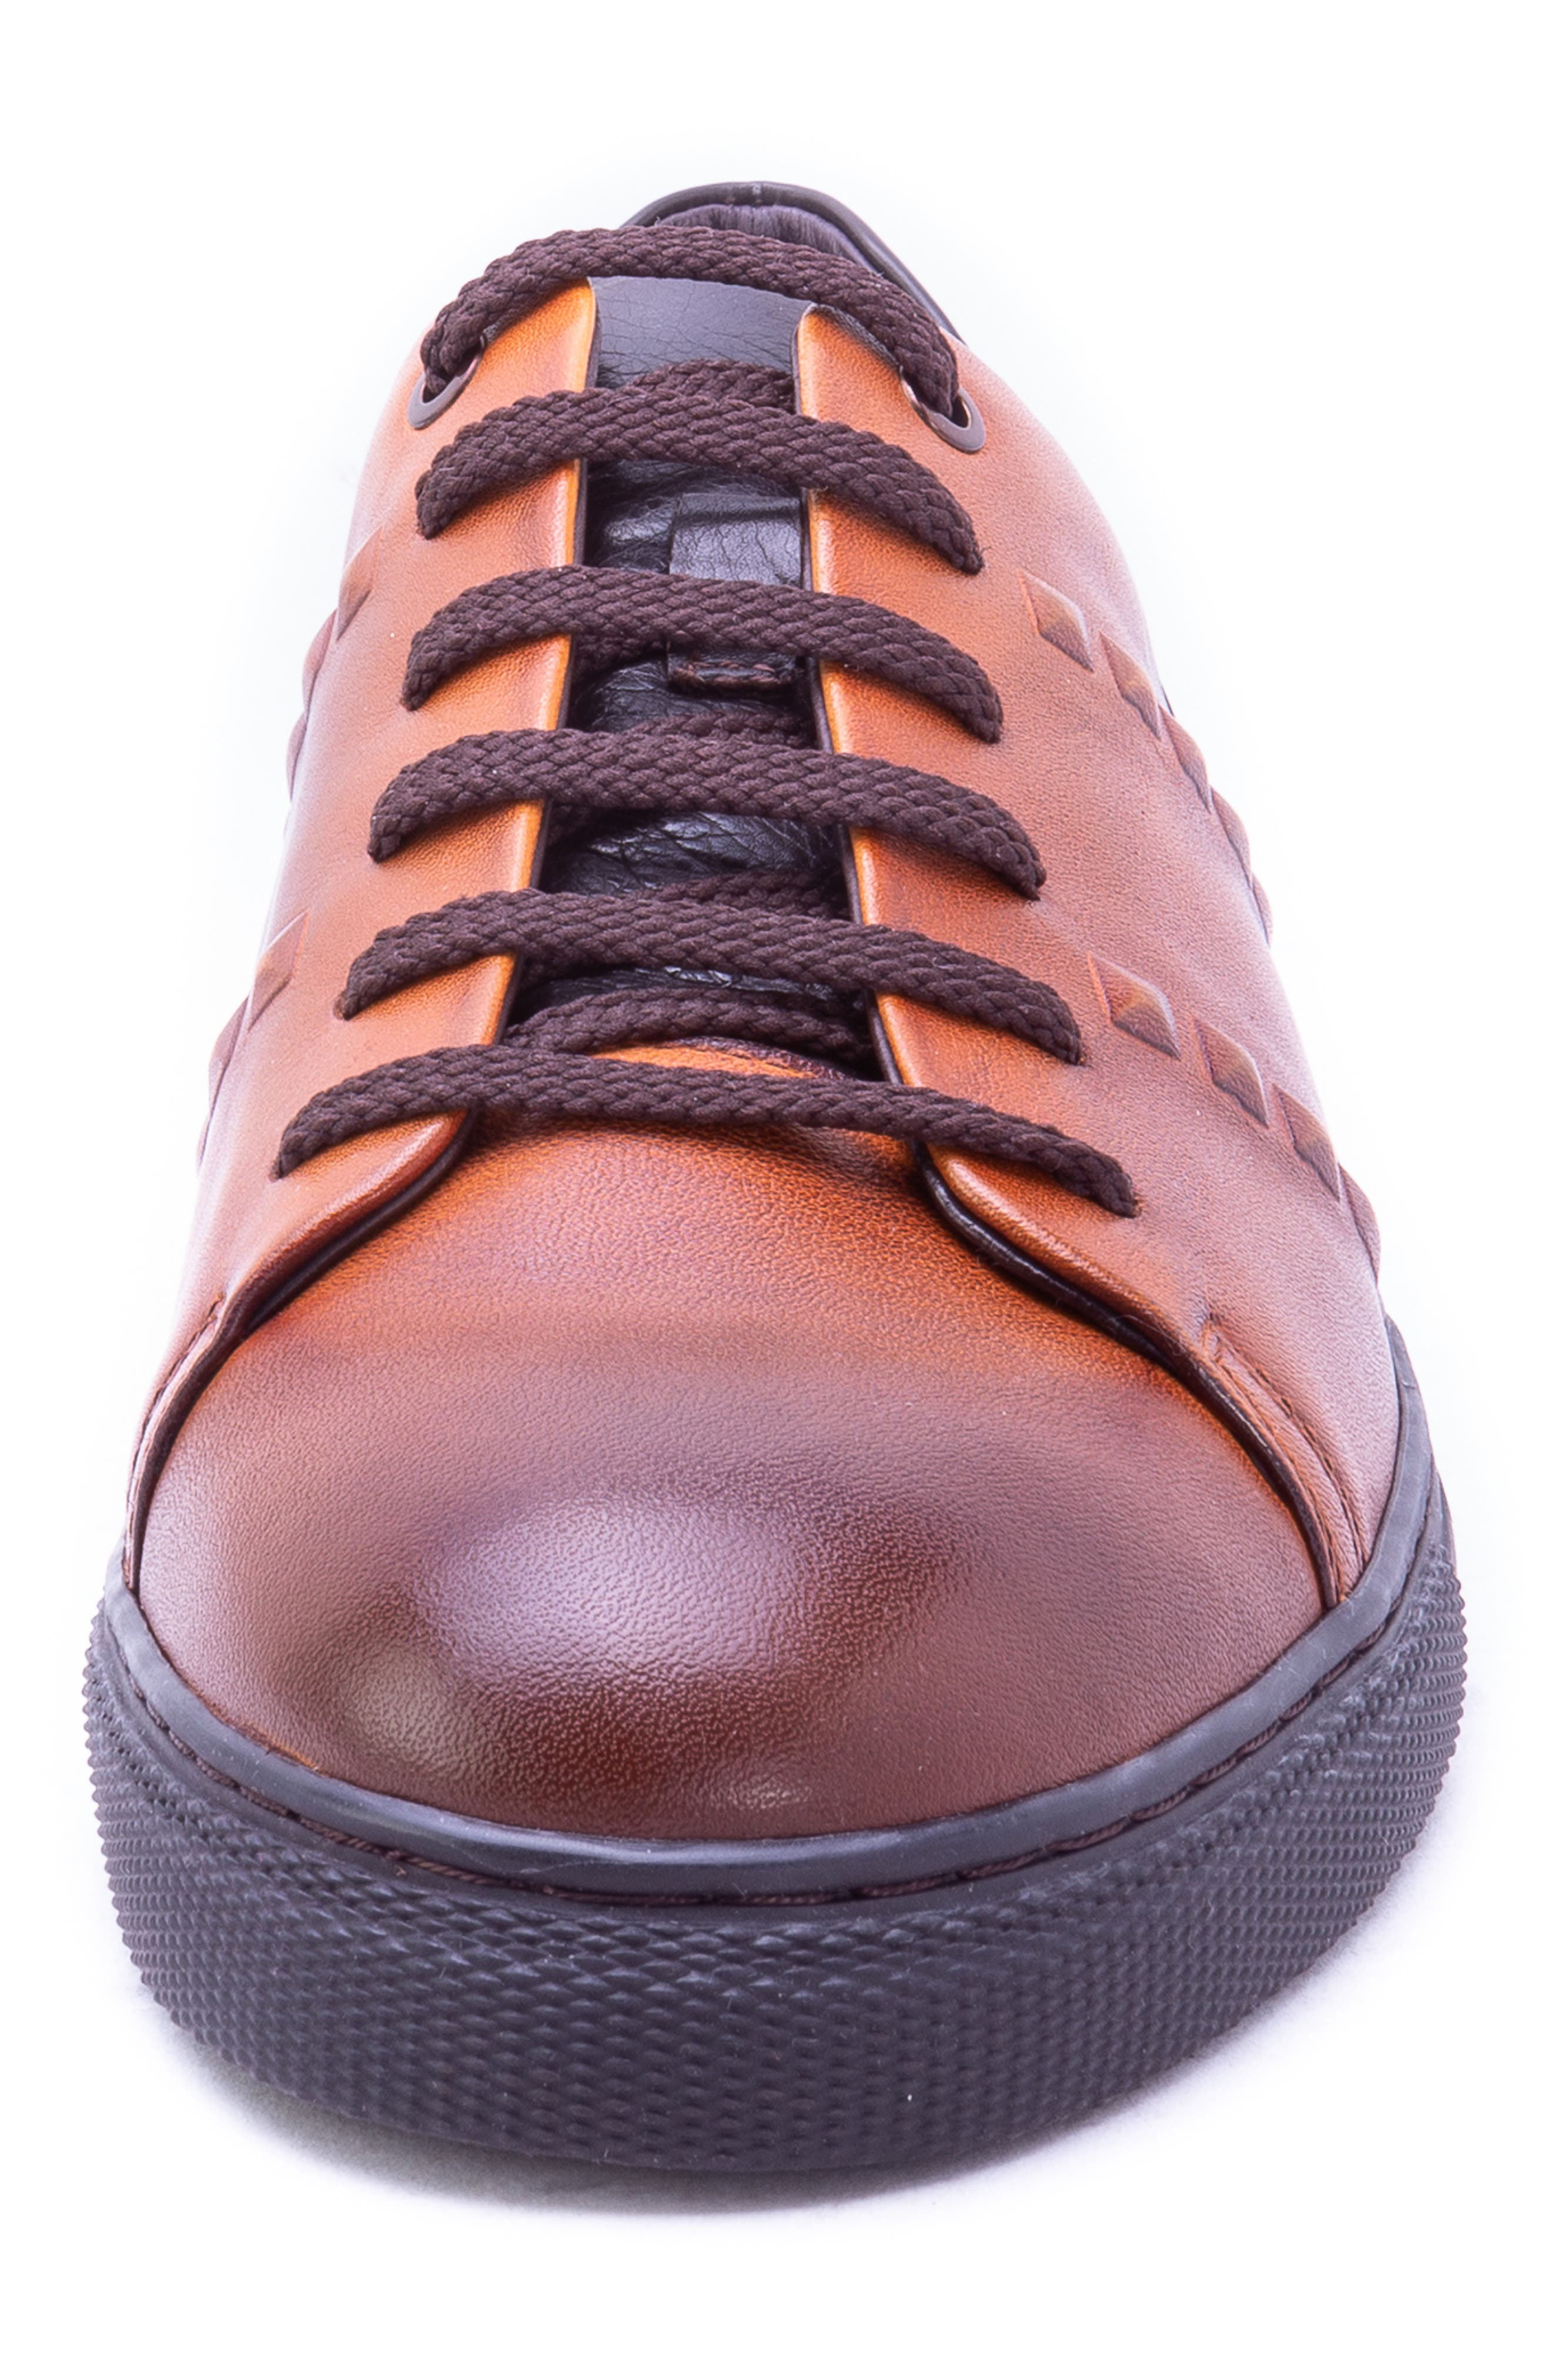 Strozzi Studded Sneaker,                             Alternate thumbnail 4, color,                             COGNAC LEATHER